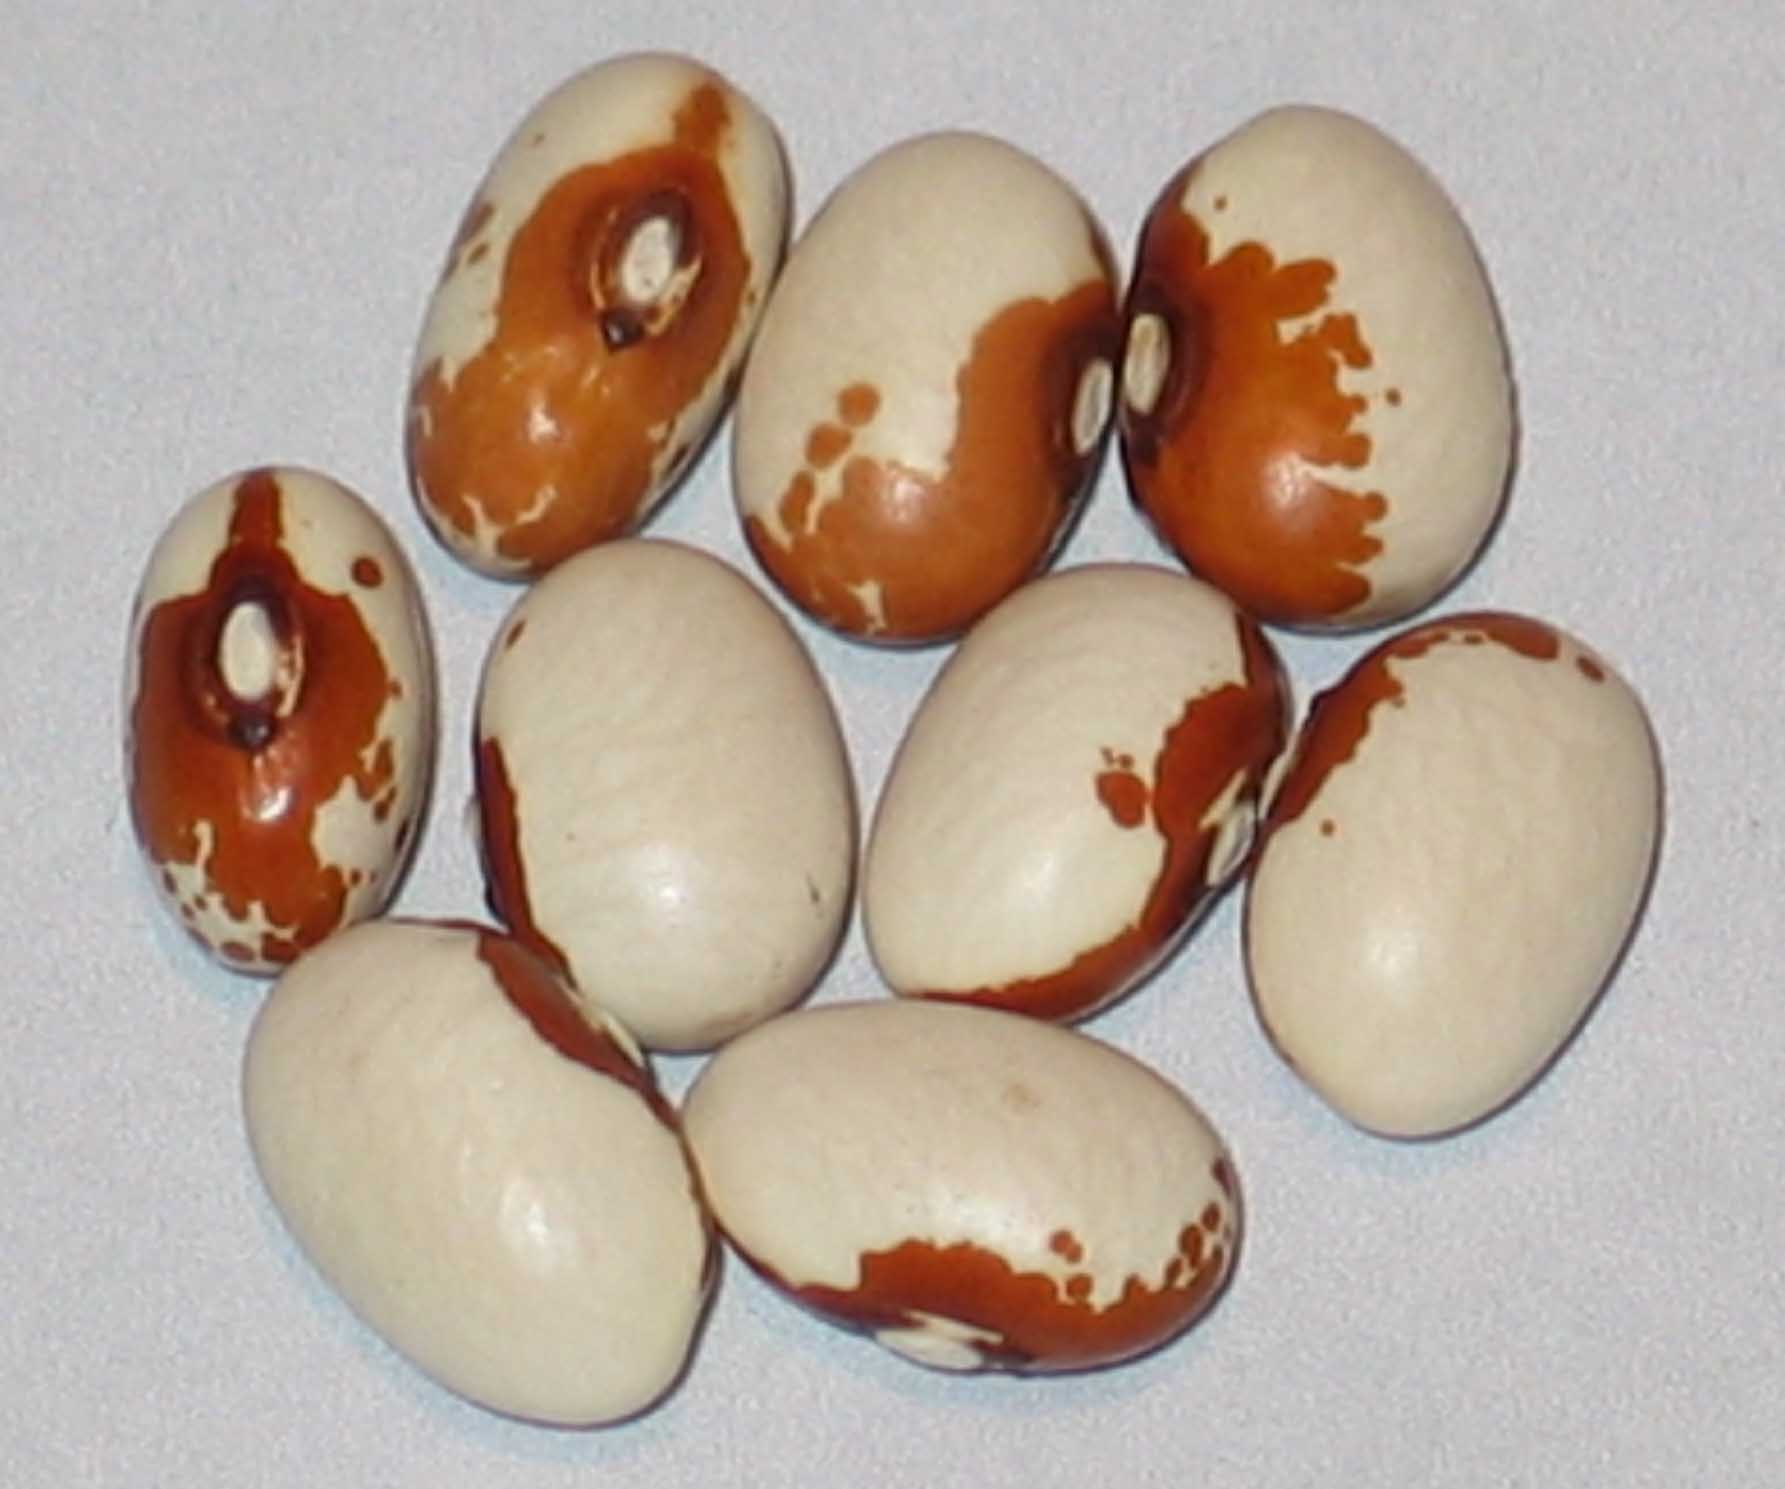 image of Maine beans